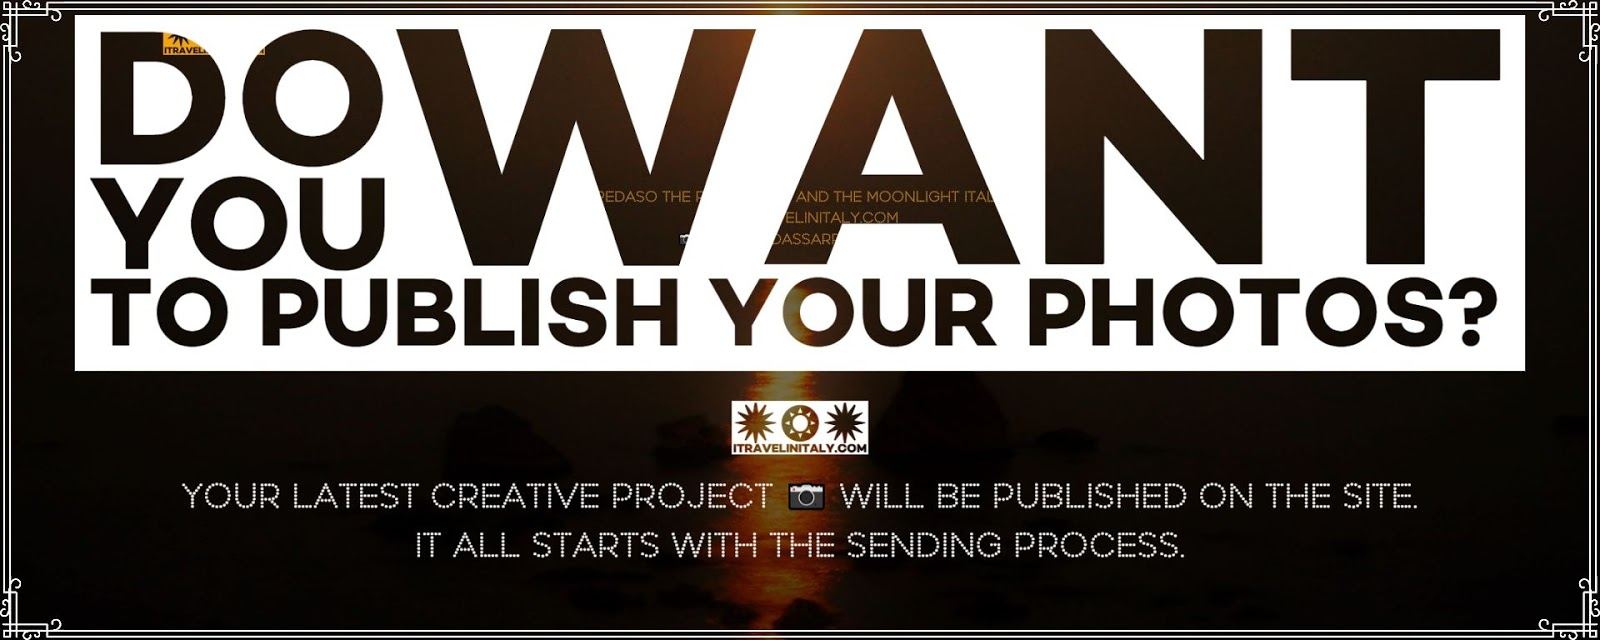 Do you want to publish your photos?